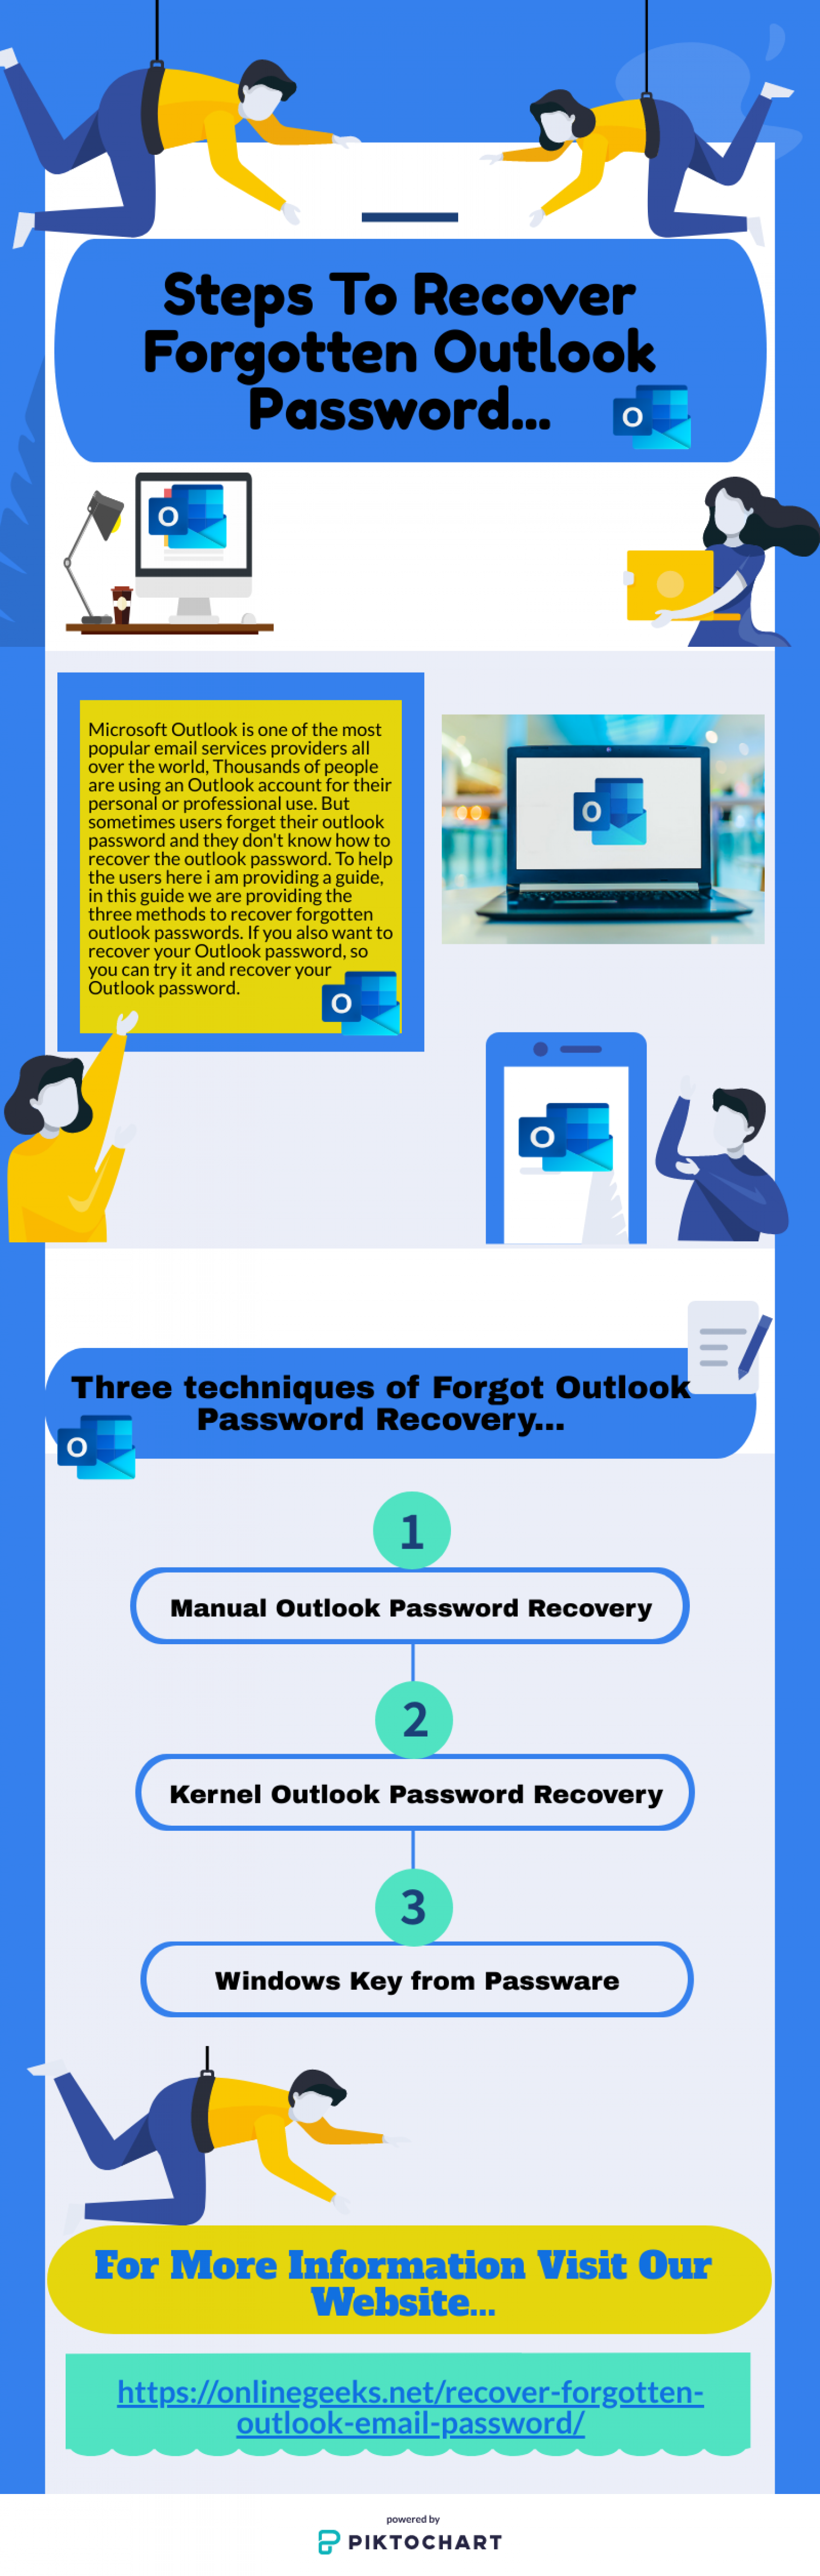 How to Recover Forgot MS Outlook Password? Infographic